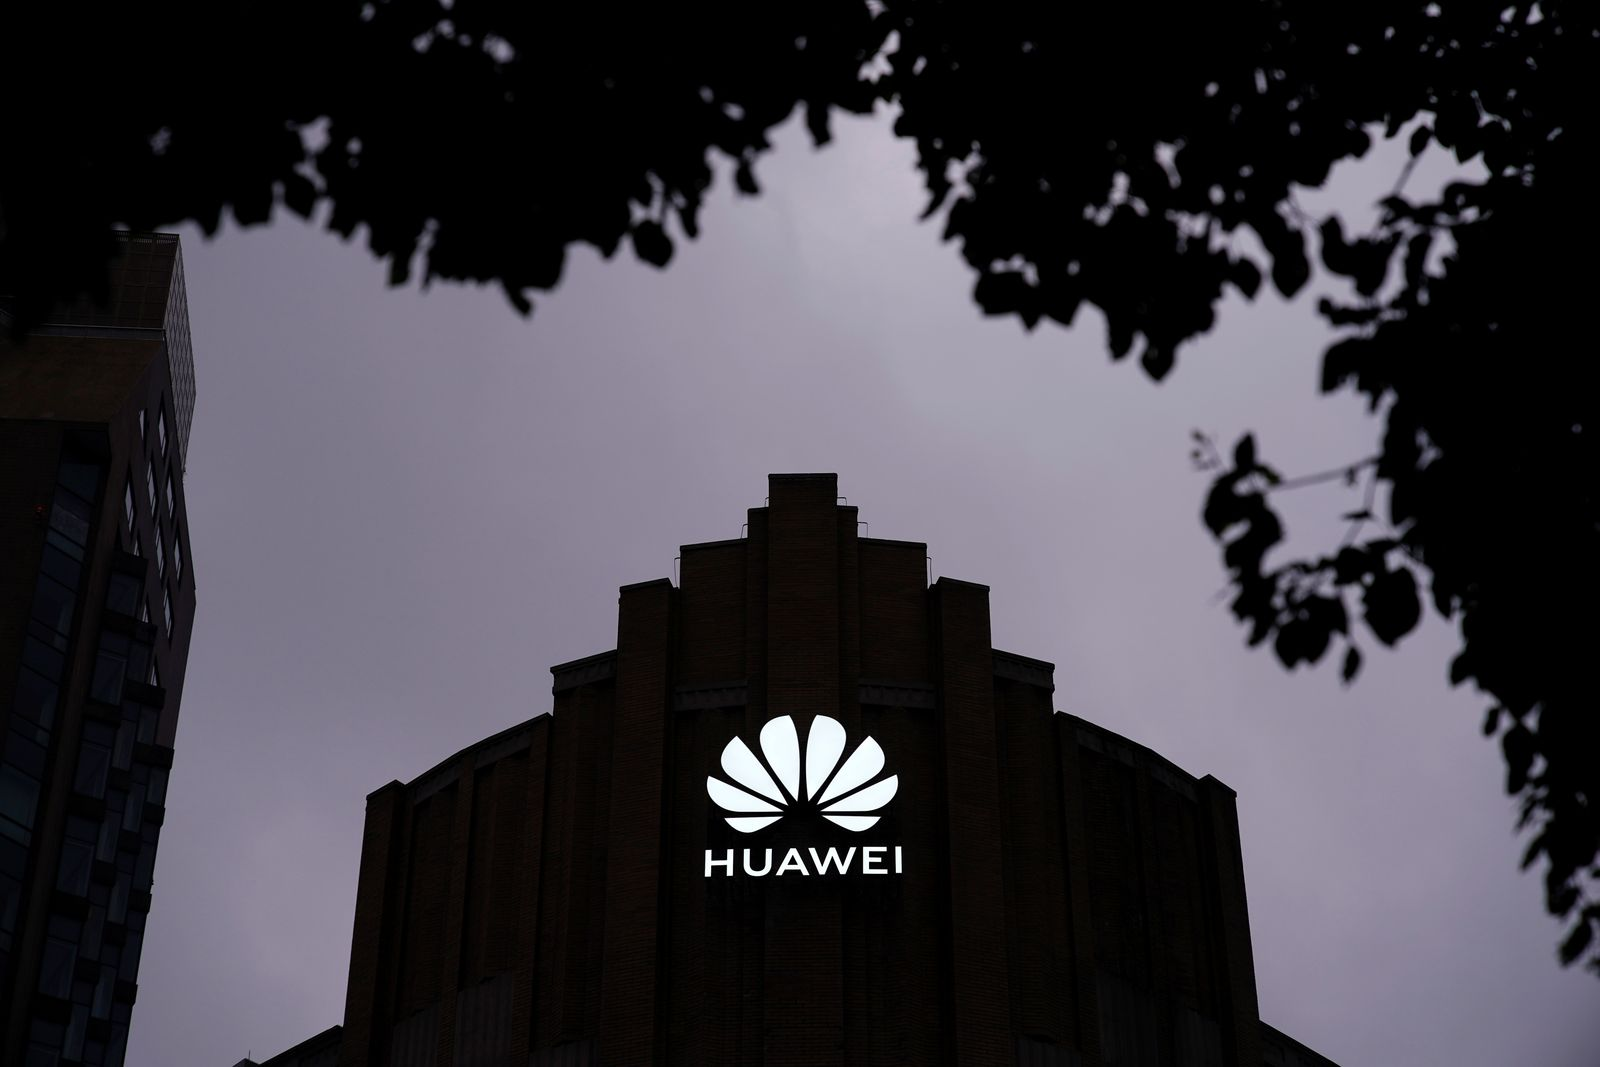 Huawei's new flagship store is seen ahead of tomorrow's official opening in Shanghai